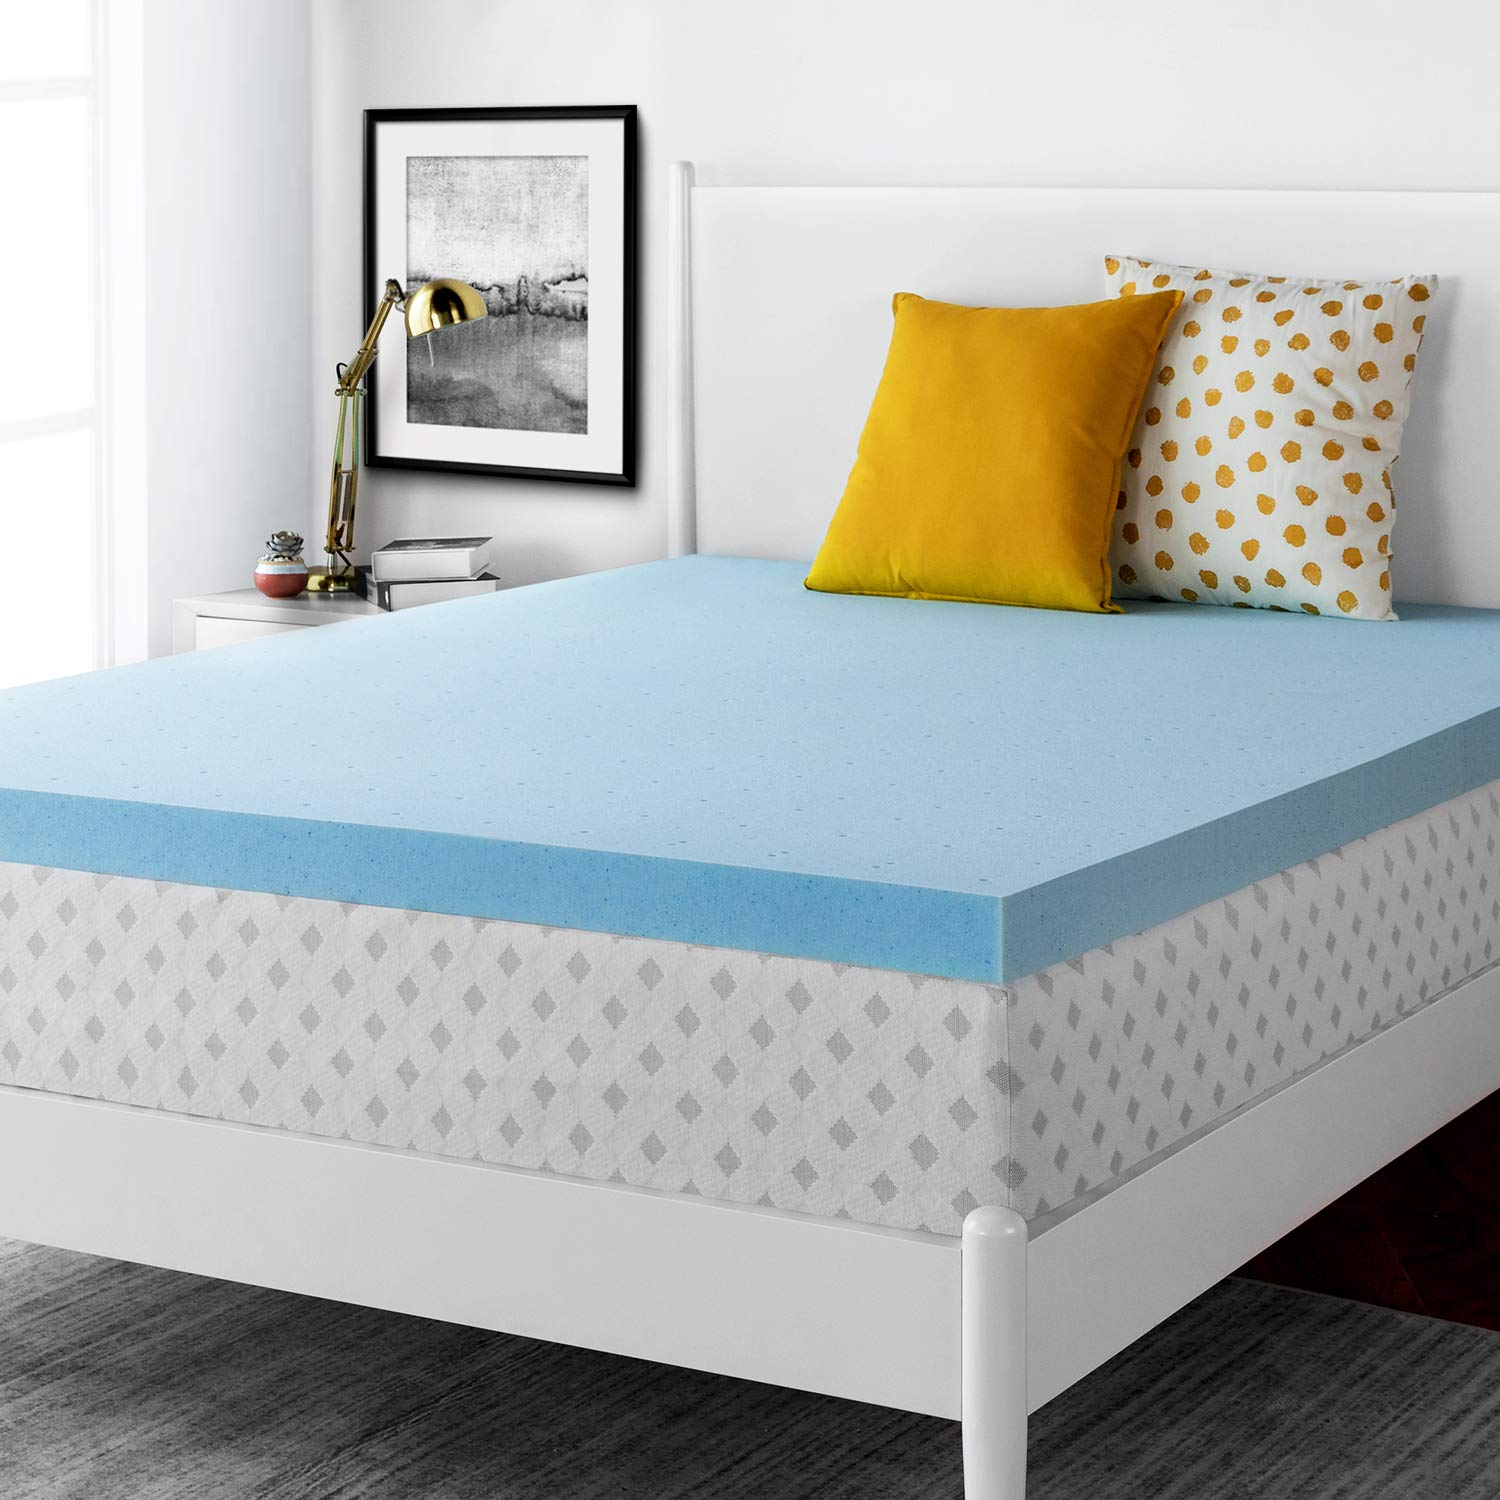 RUUF Mattress Topper Queen, 3 Inch Gel-Infused Memory Foam Mattress Topper - CertiPUR-US & Cloud-Like Softness, 60'' x 80''. by RUUF